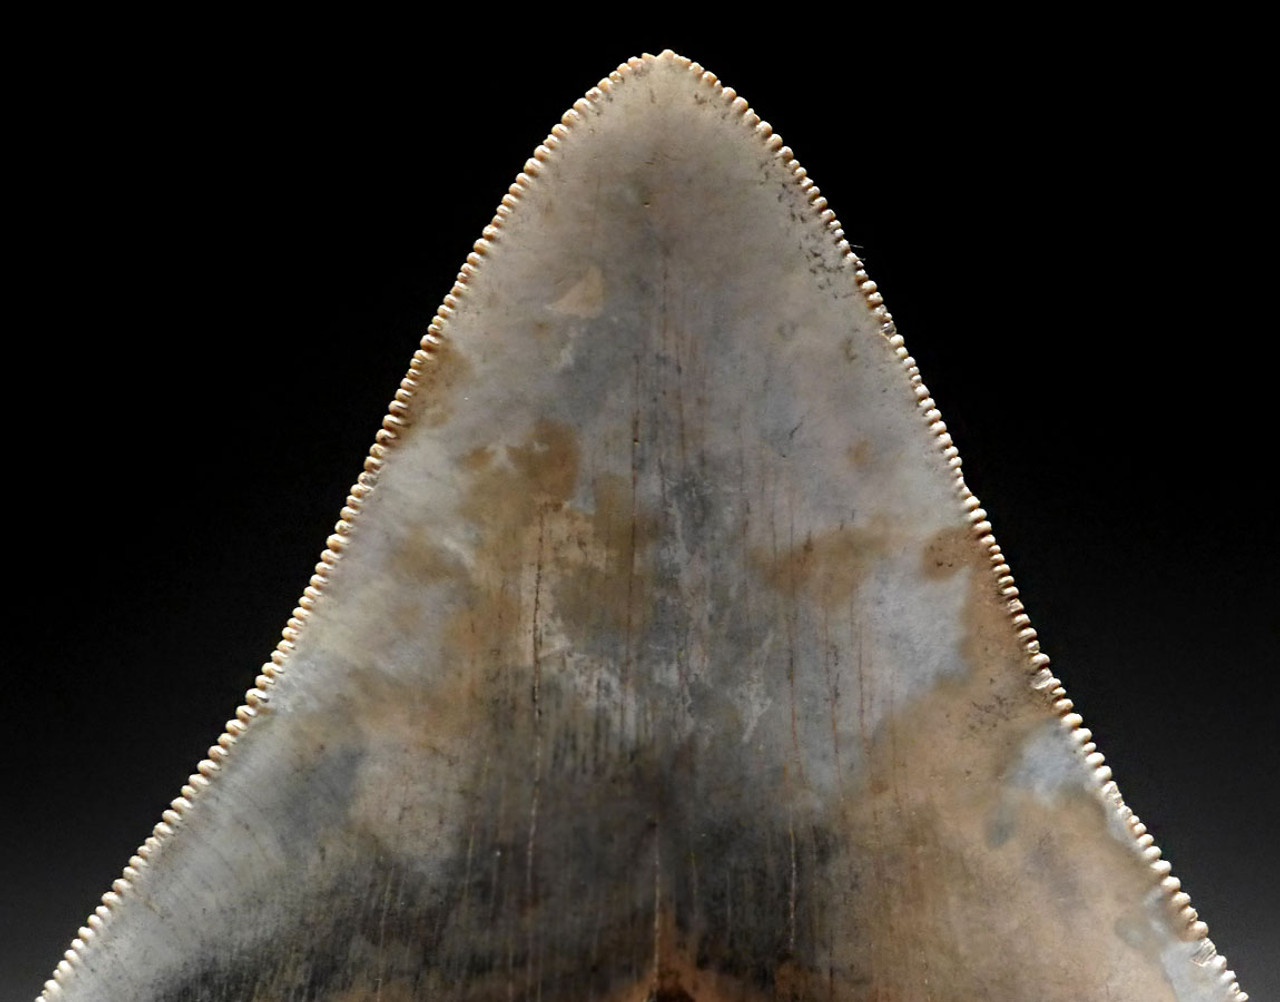 INVESTMENT GRADE 4.5 INCH MEGALODON SHARK TOOTH WITH BABY BLUE AND GOLD MOTTLING  *SH6-373